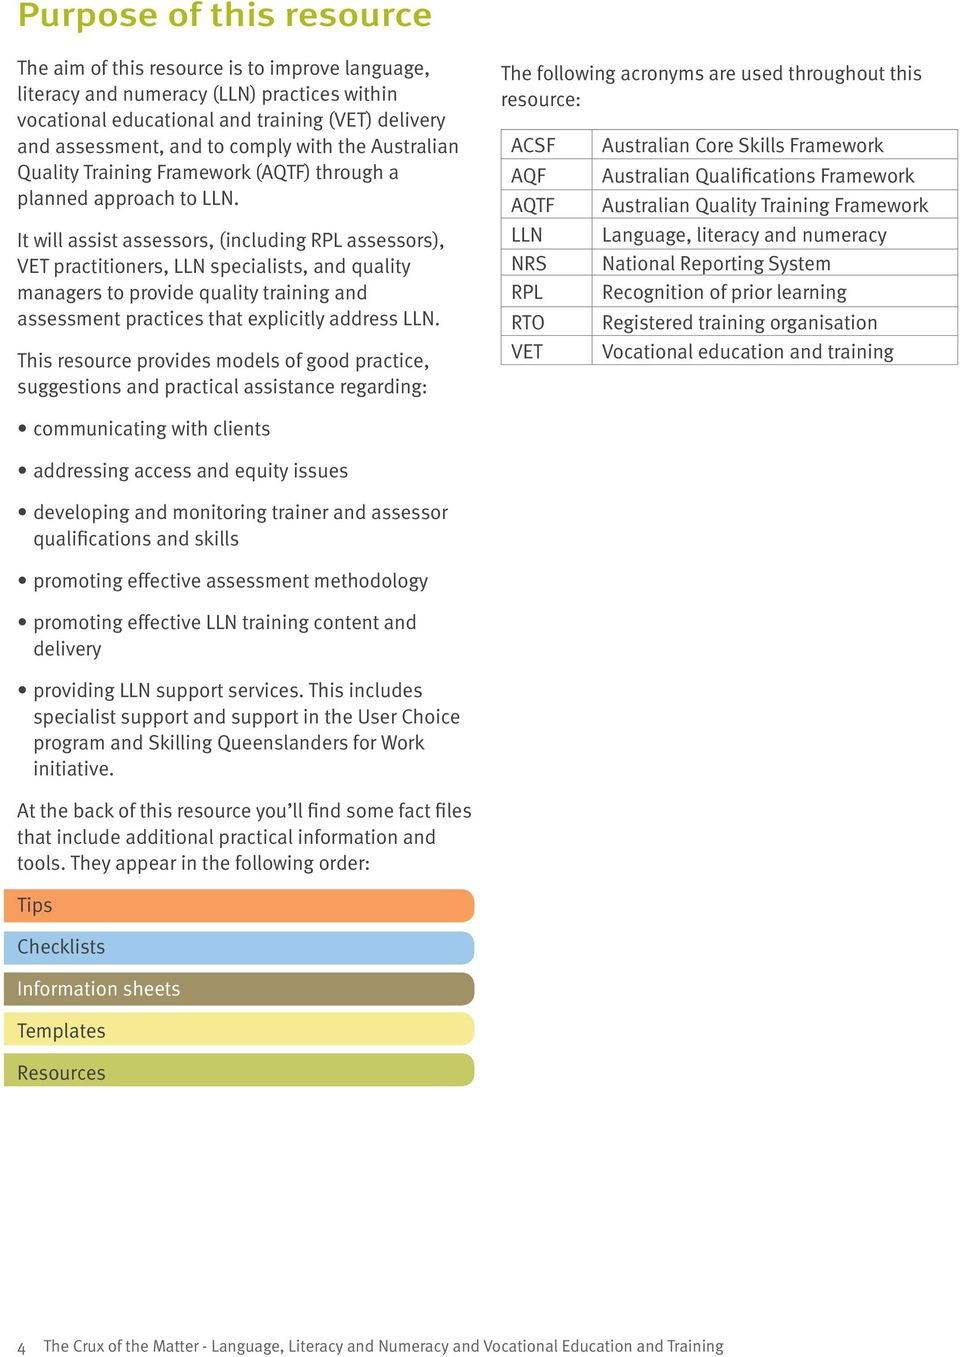 The Crux of the Matter 2011: Language, Literacy and Numeracy and ...